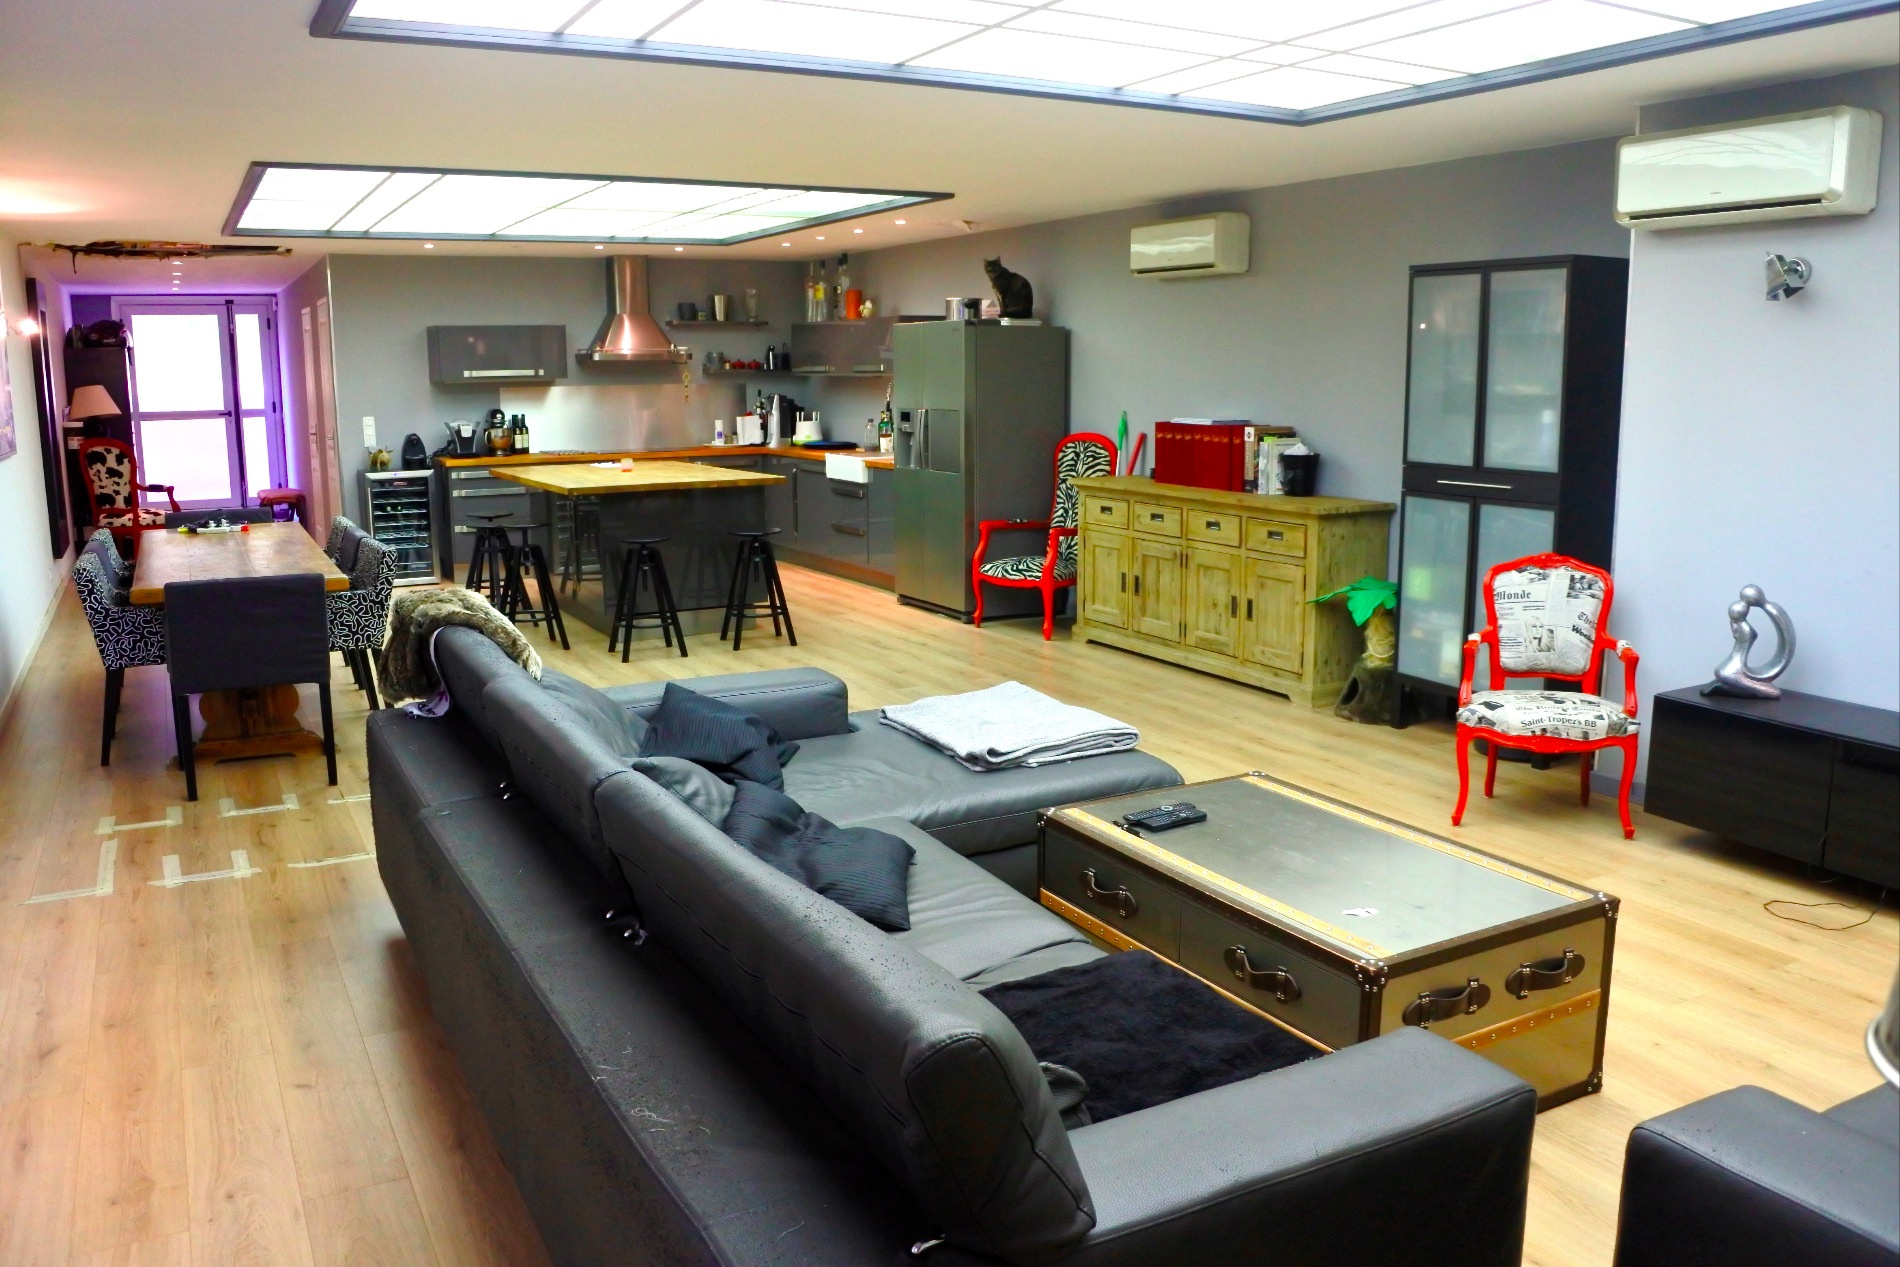 Vente nice rue de france superbe appartement loft 130 m2 for Vente loft france